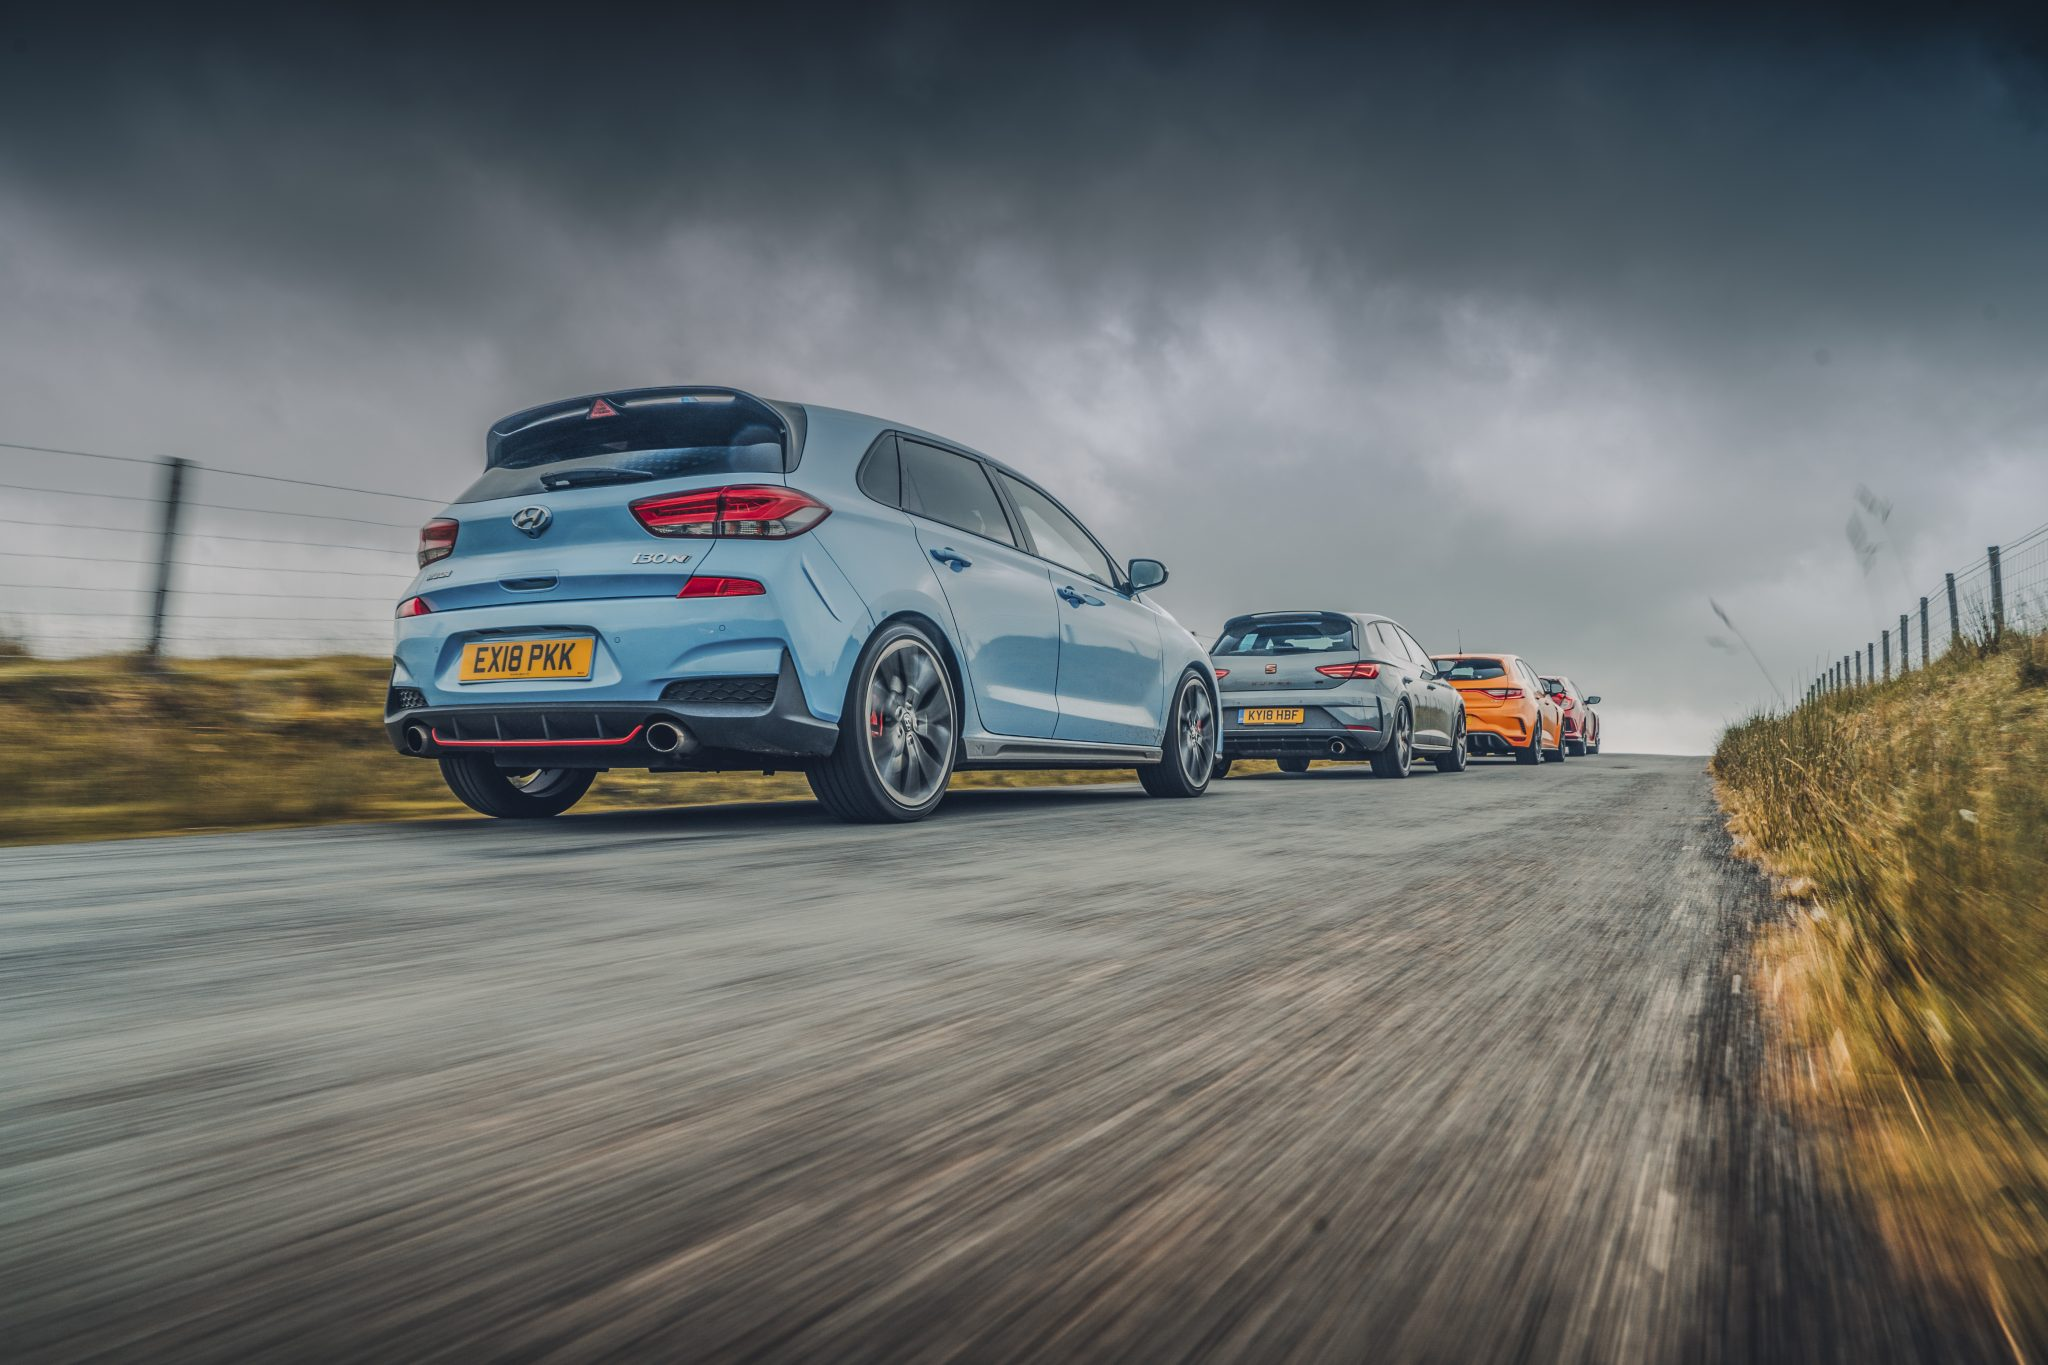 Seat Leon Cupra R vs Renault Mégane RS 280 vs Honda Civic Type R vs Hyundai i30 N Performance